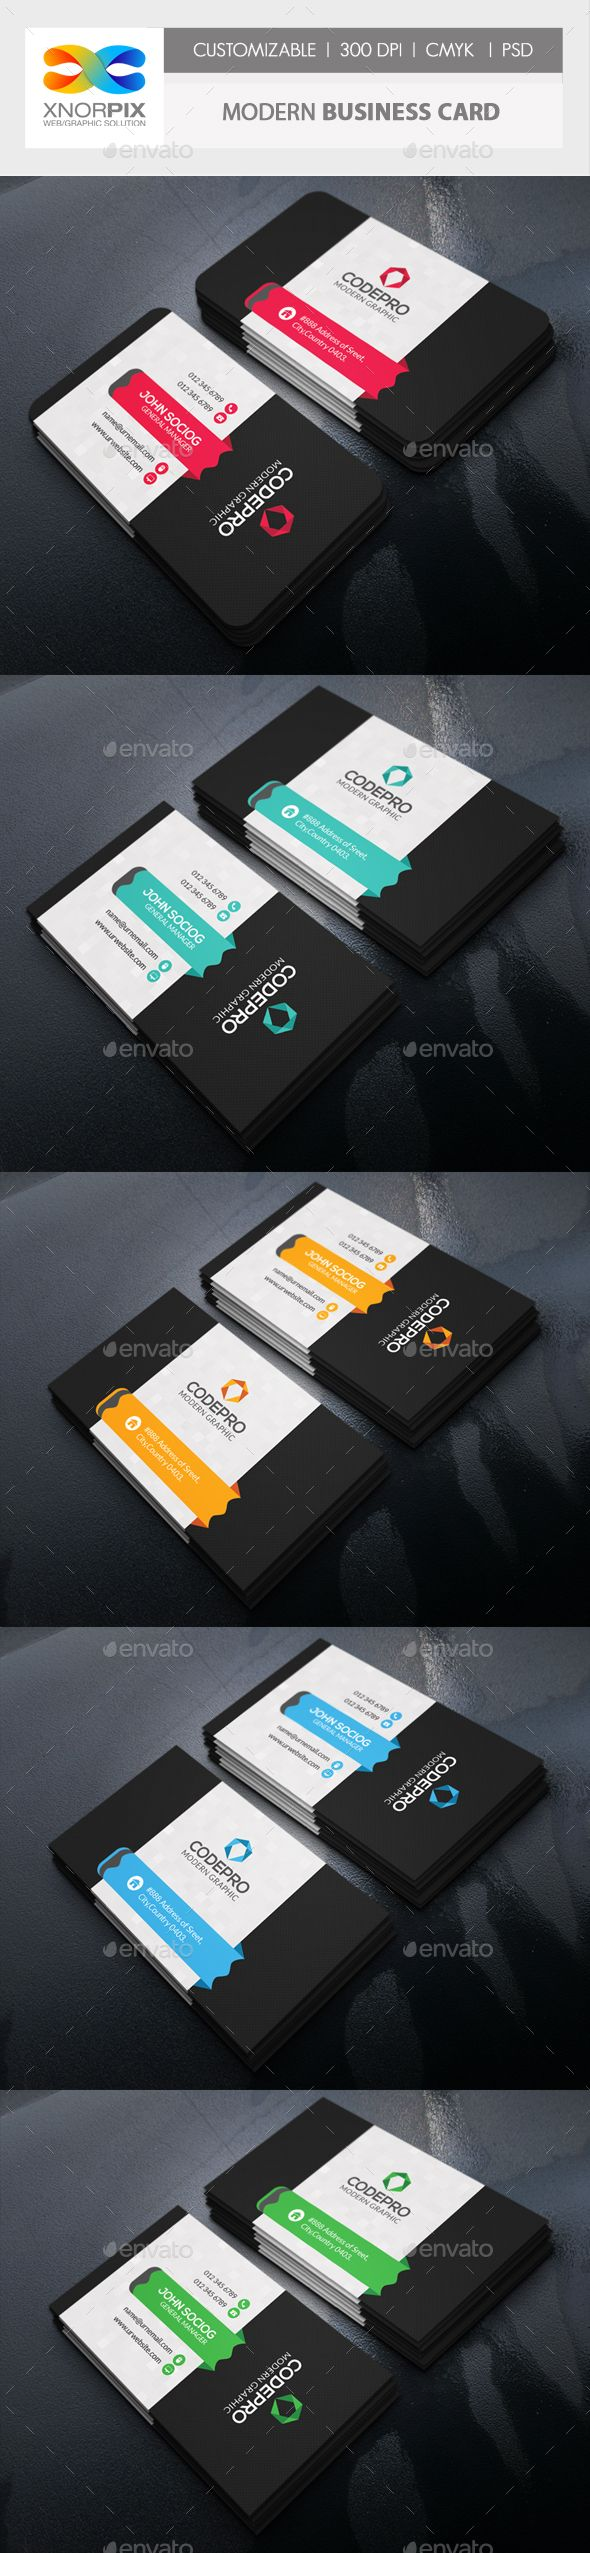 63 Best Business Card Inspiration Images On Pinterest Business